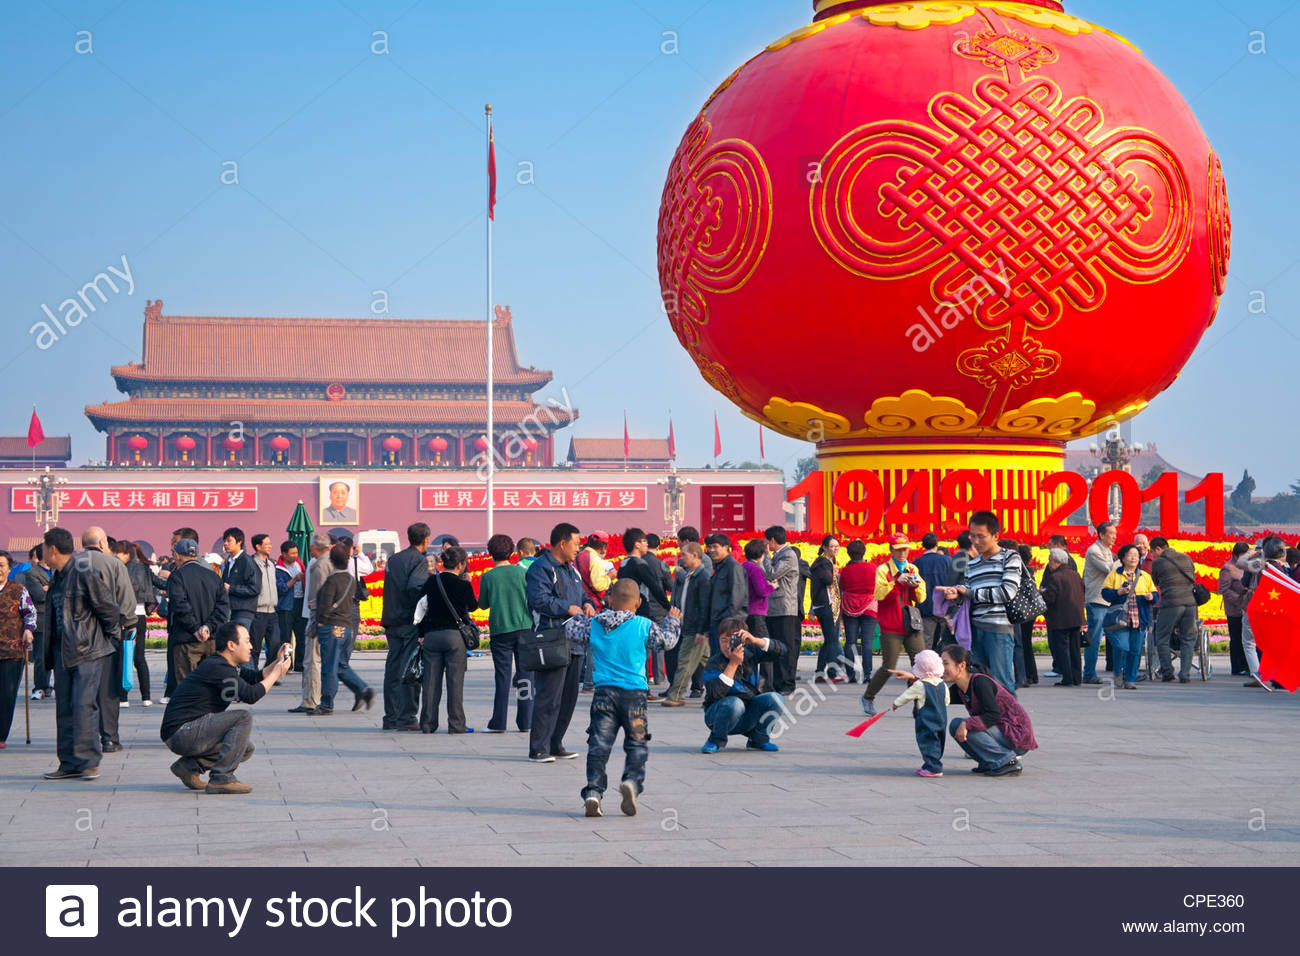 Locals at Tianamen Square during National Day festival, Beijing, China, Asia - Stock Image